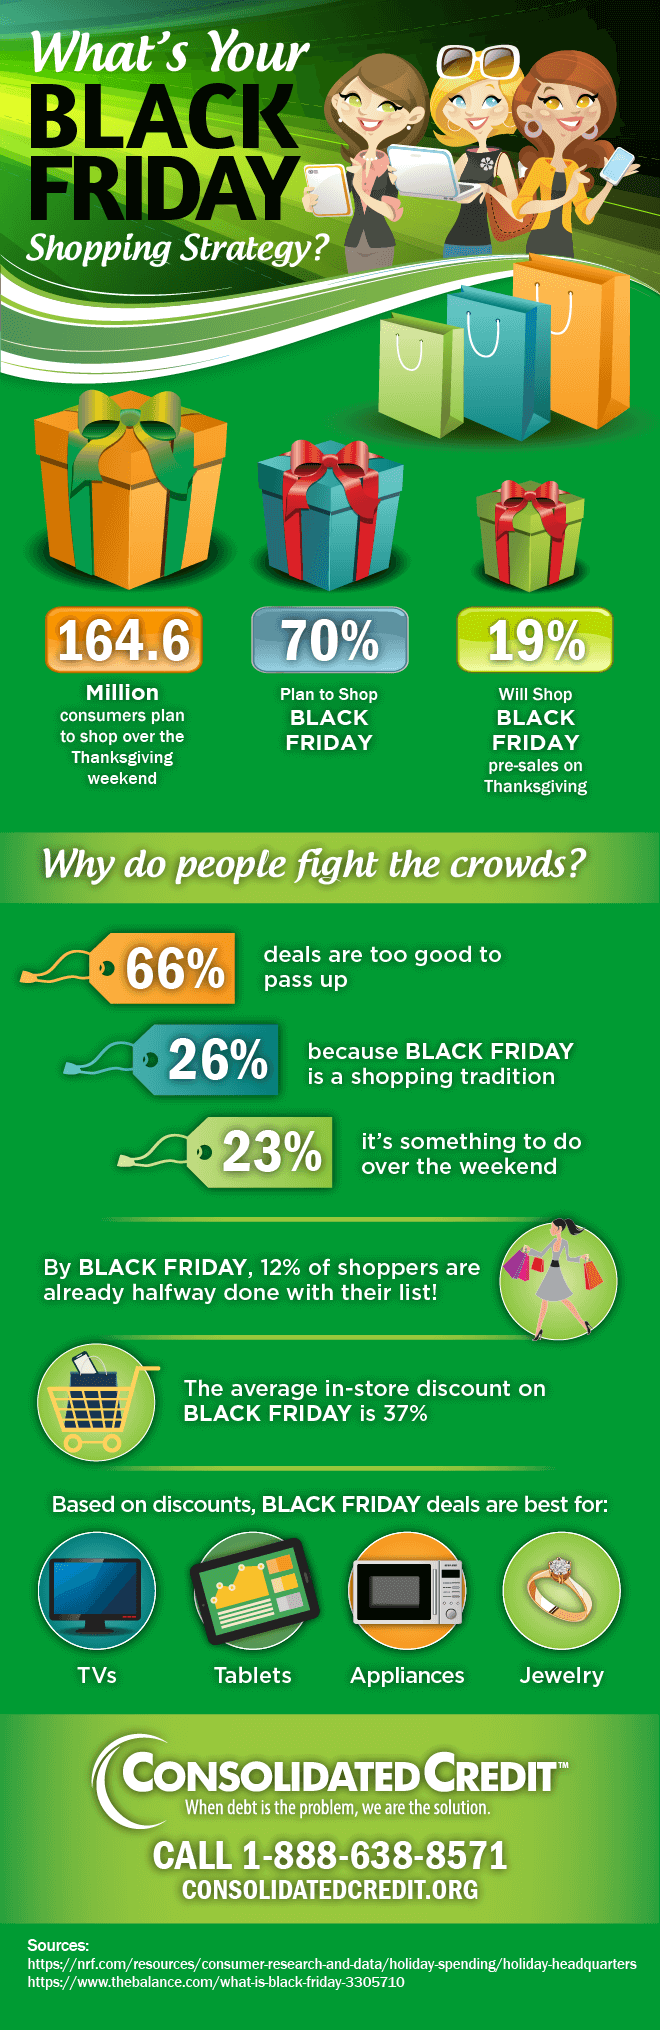 Consolidated Credit infographic: What's your Black Friday shopping strategy